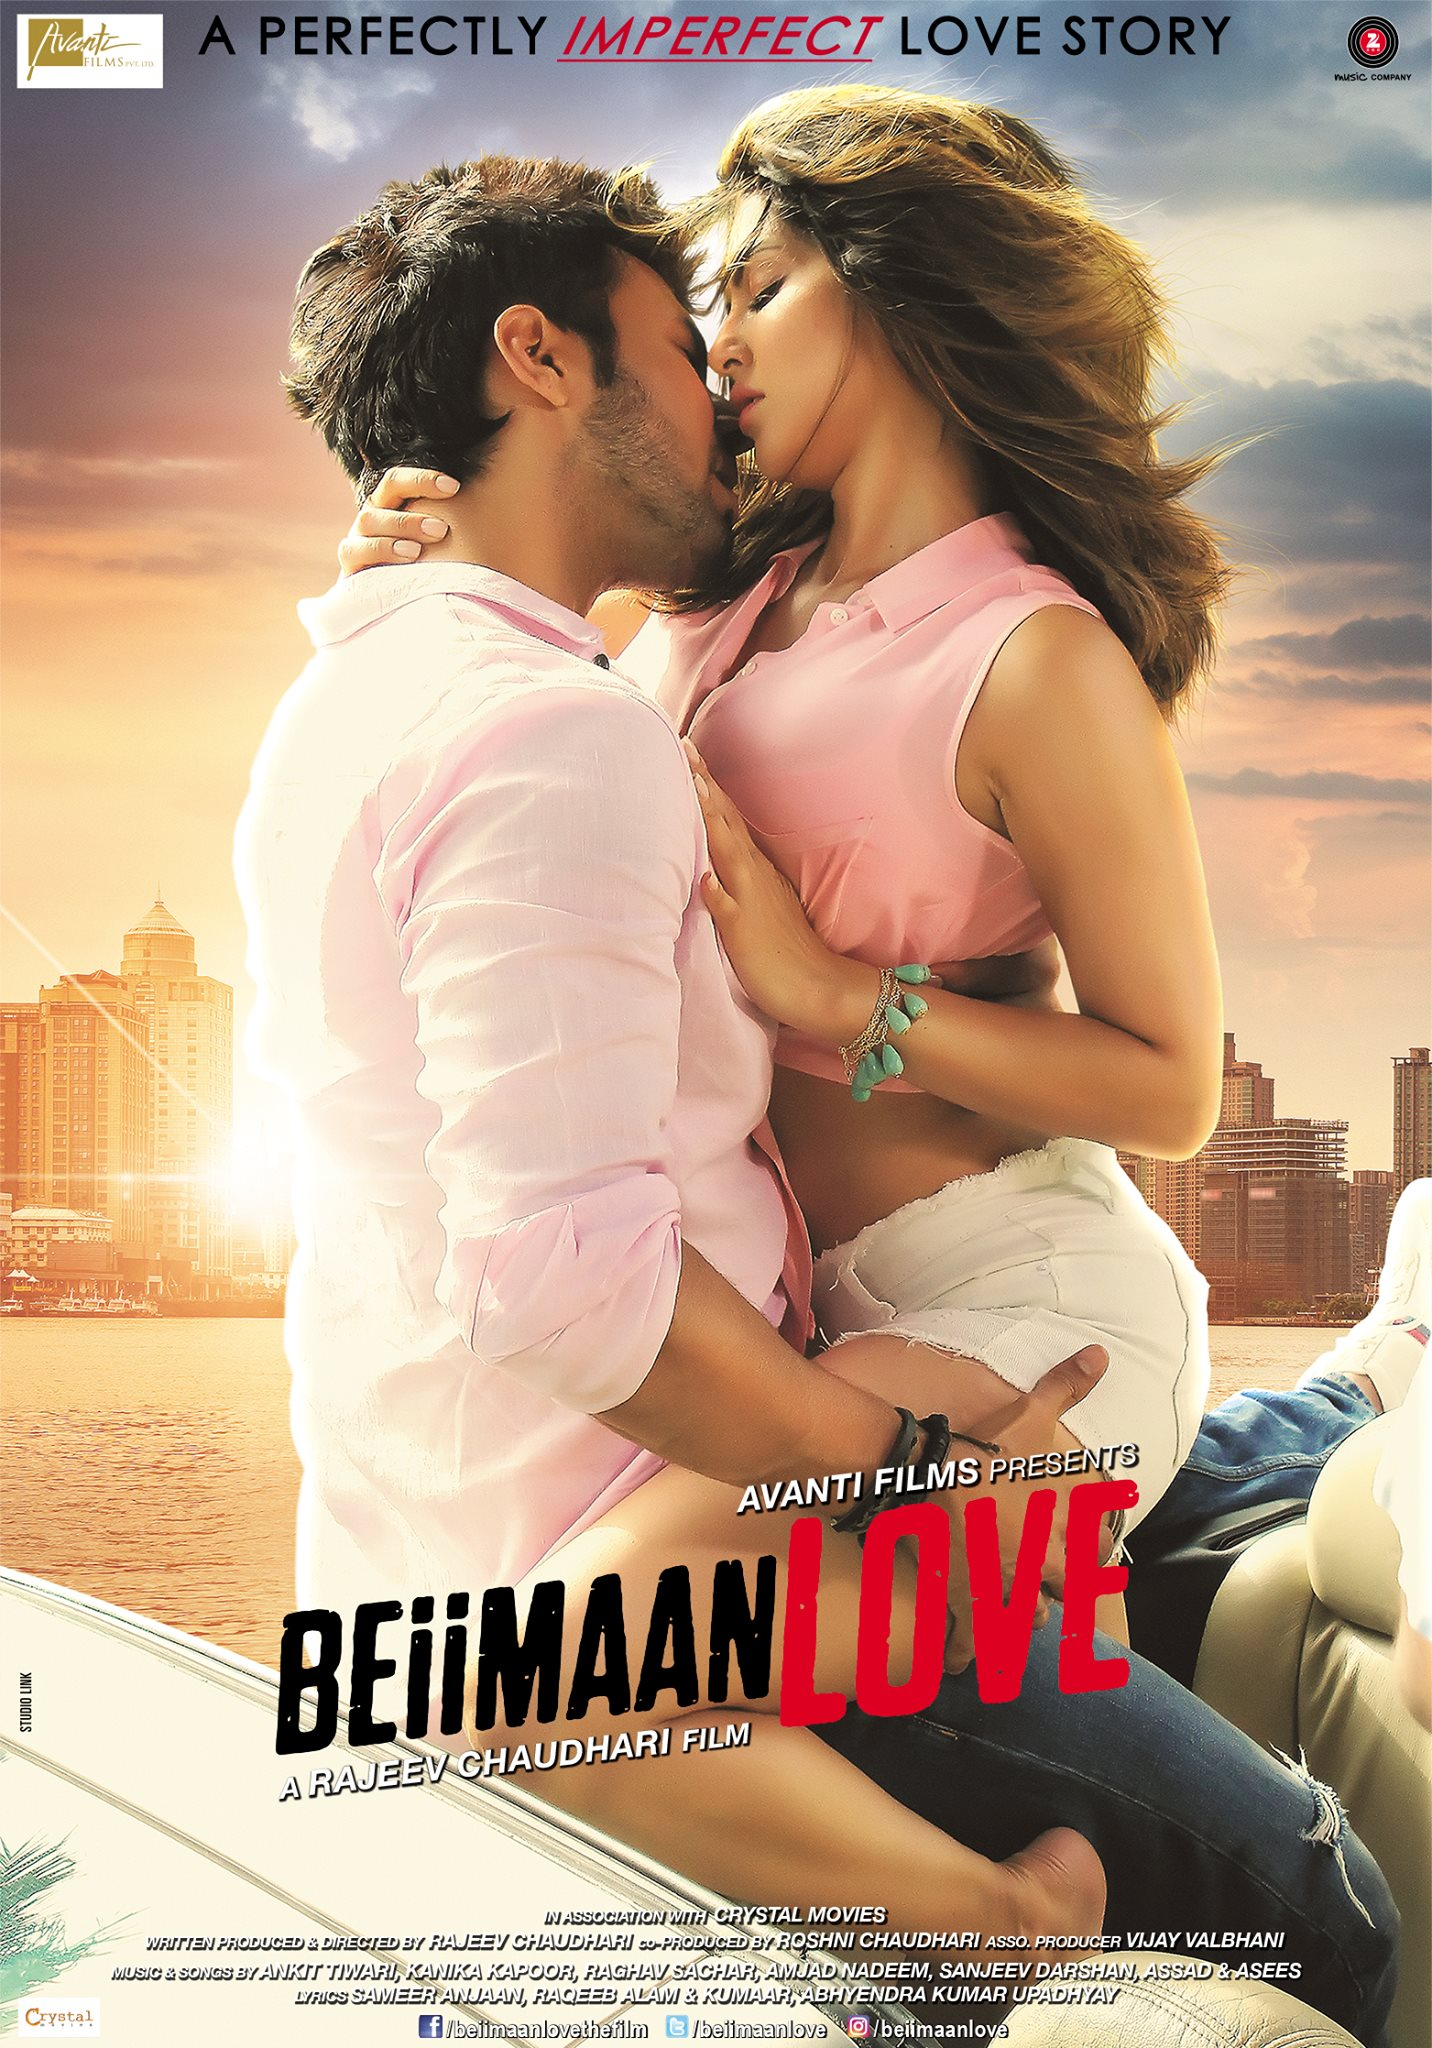 Beiimaan Love (2016) Hindi Full HD Movie